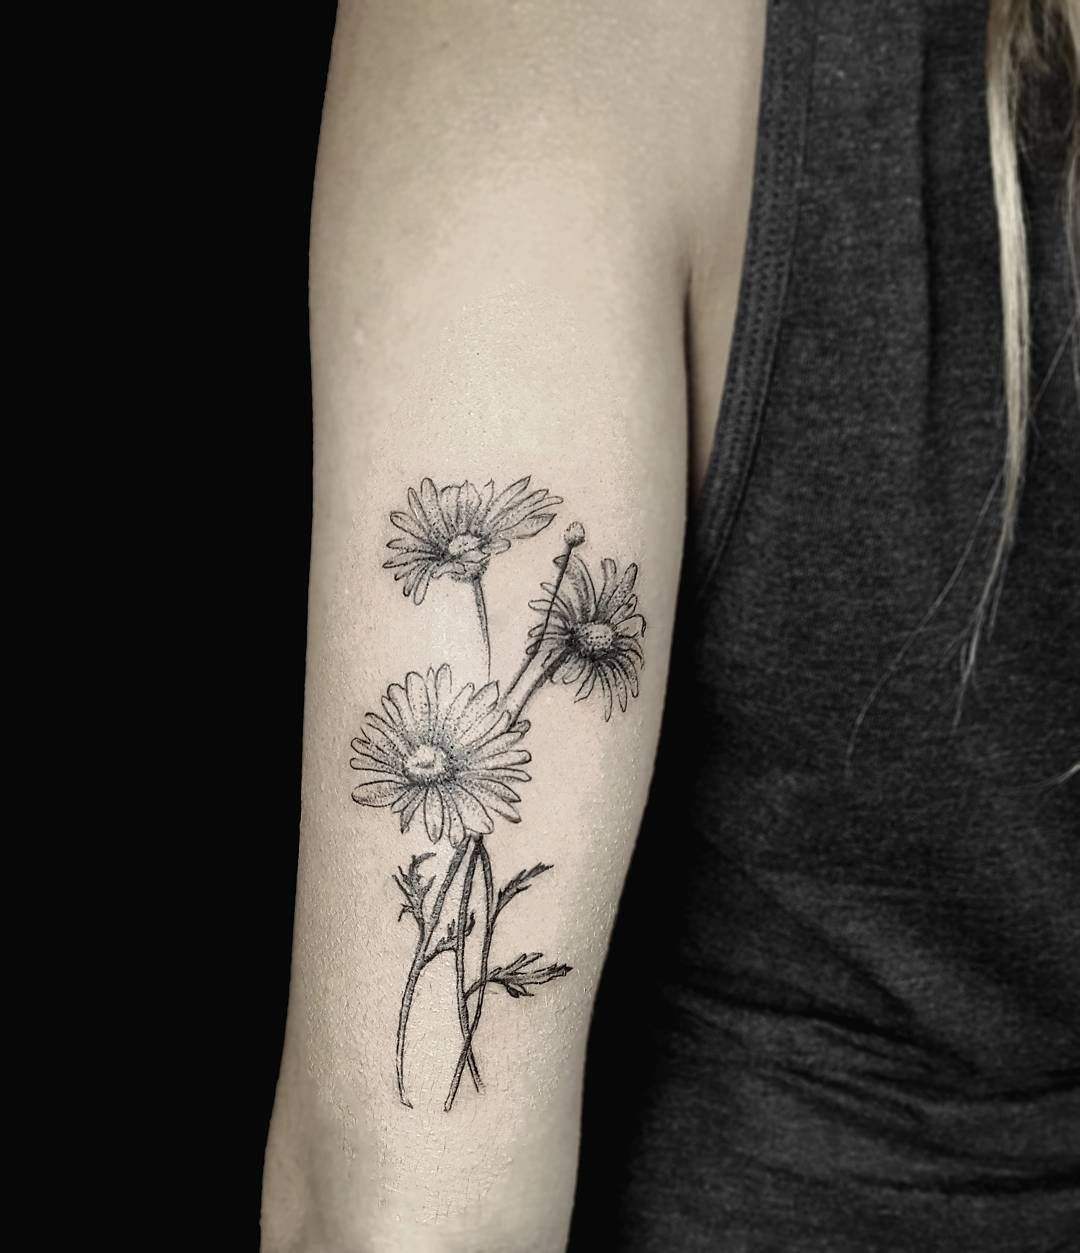 60 Delicate Floral Tattoos Designs with Meaning Daisy